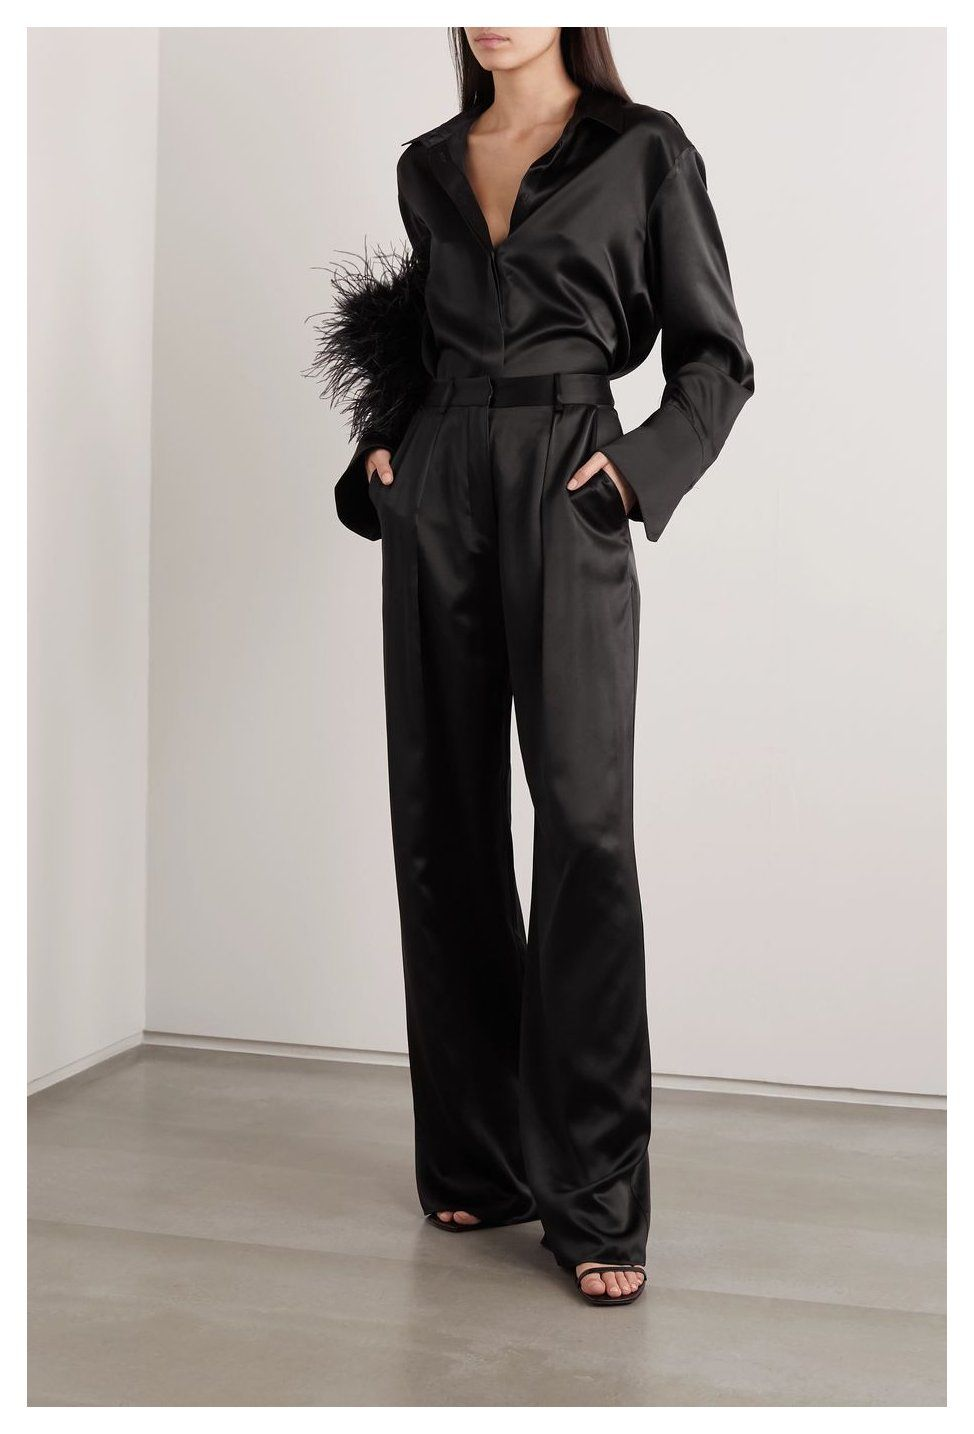 silk trousers outfit